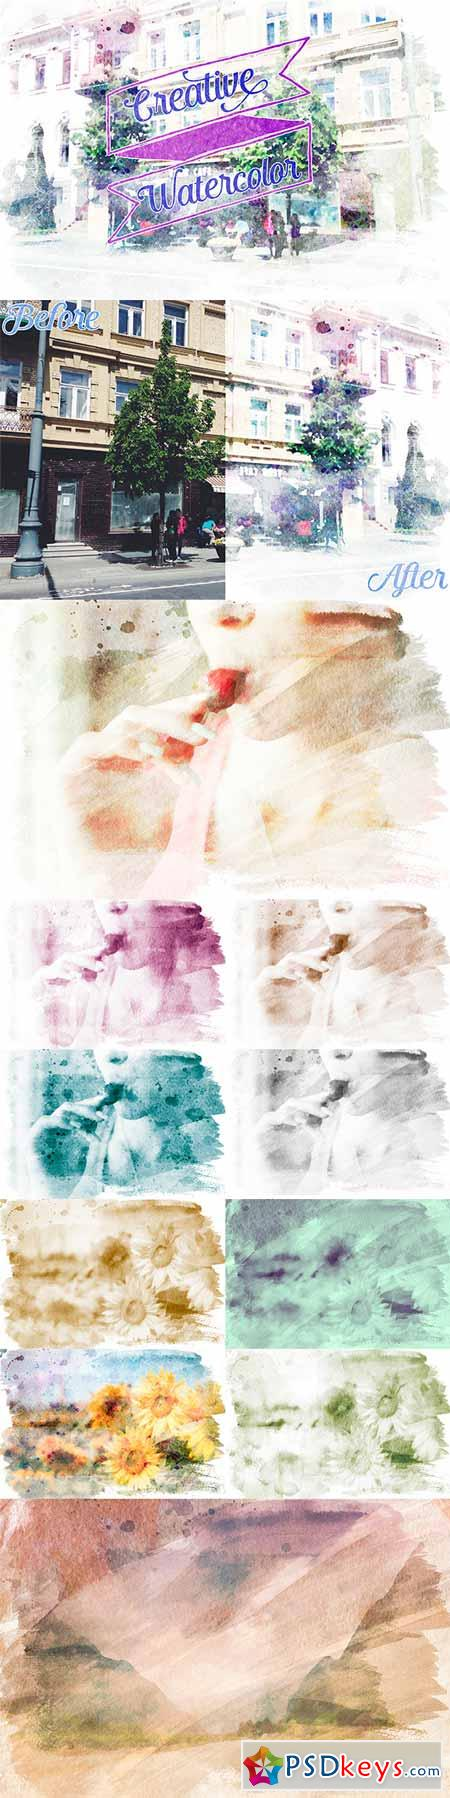 Creative Watercolor Painting Vol. 02 10070205